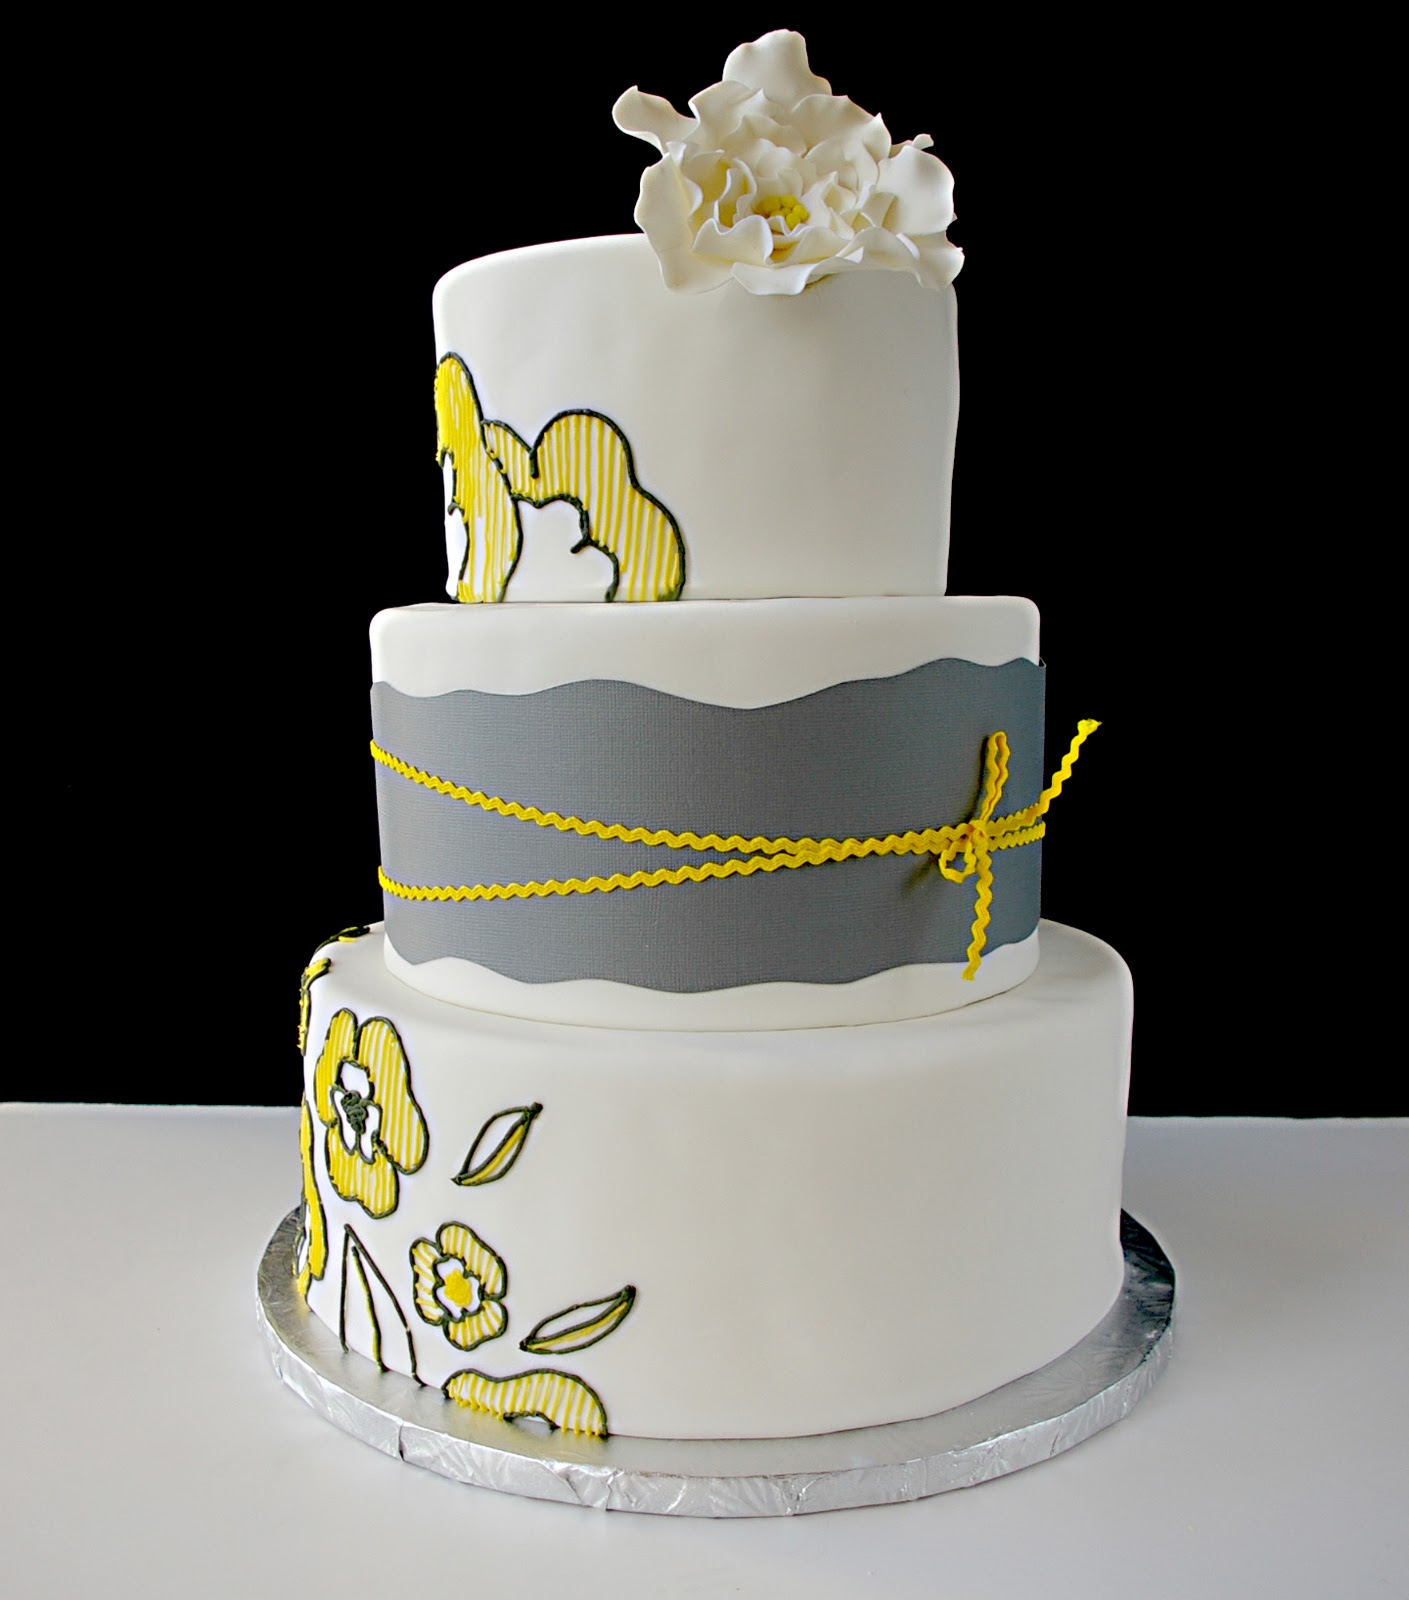 wedding cakes yellow and grey these peas are hollow ch ch ch changes 26162